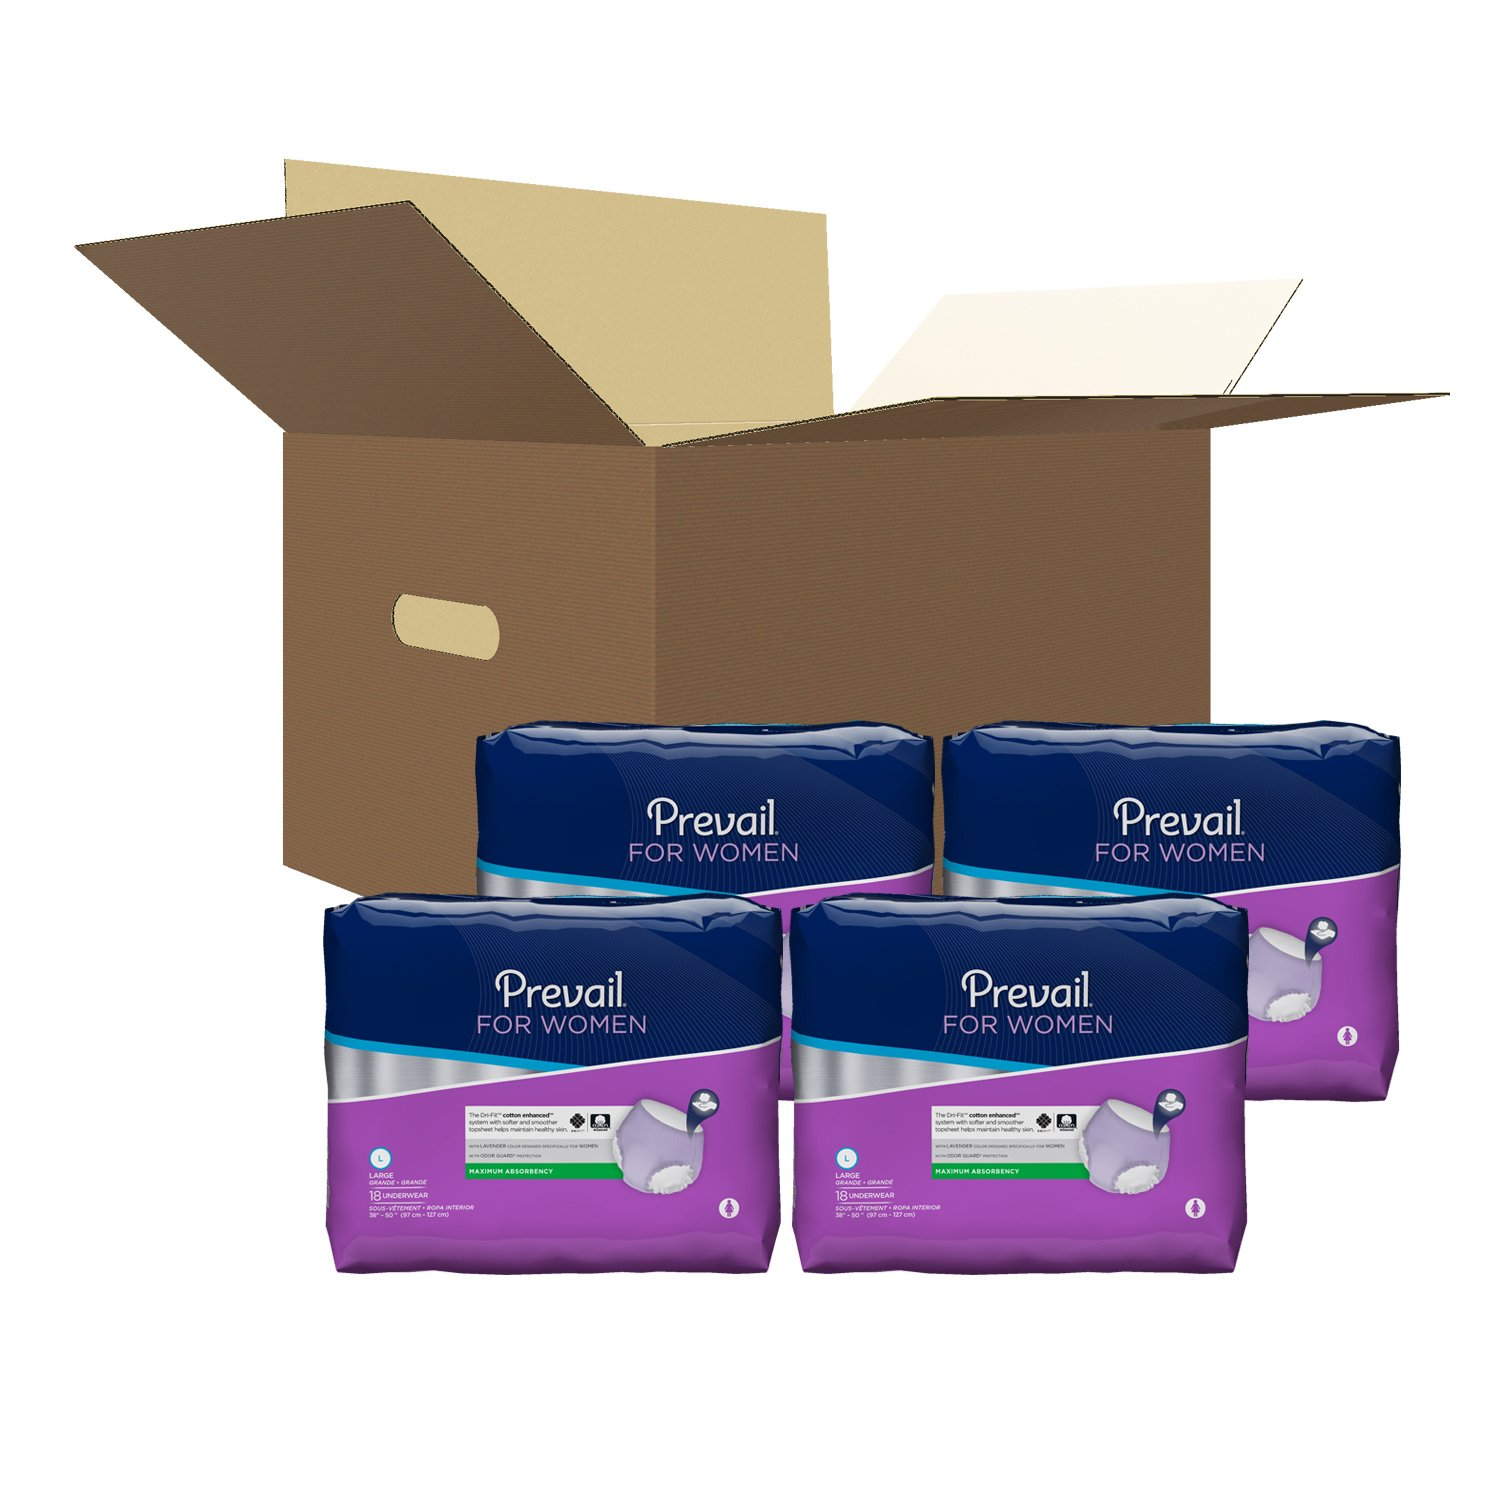 Amazon.com: Prevail Maximum Absorbency Incontinence Underwear for Women, Large, 18-Count: Health & Personal Care